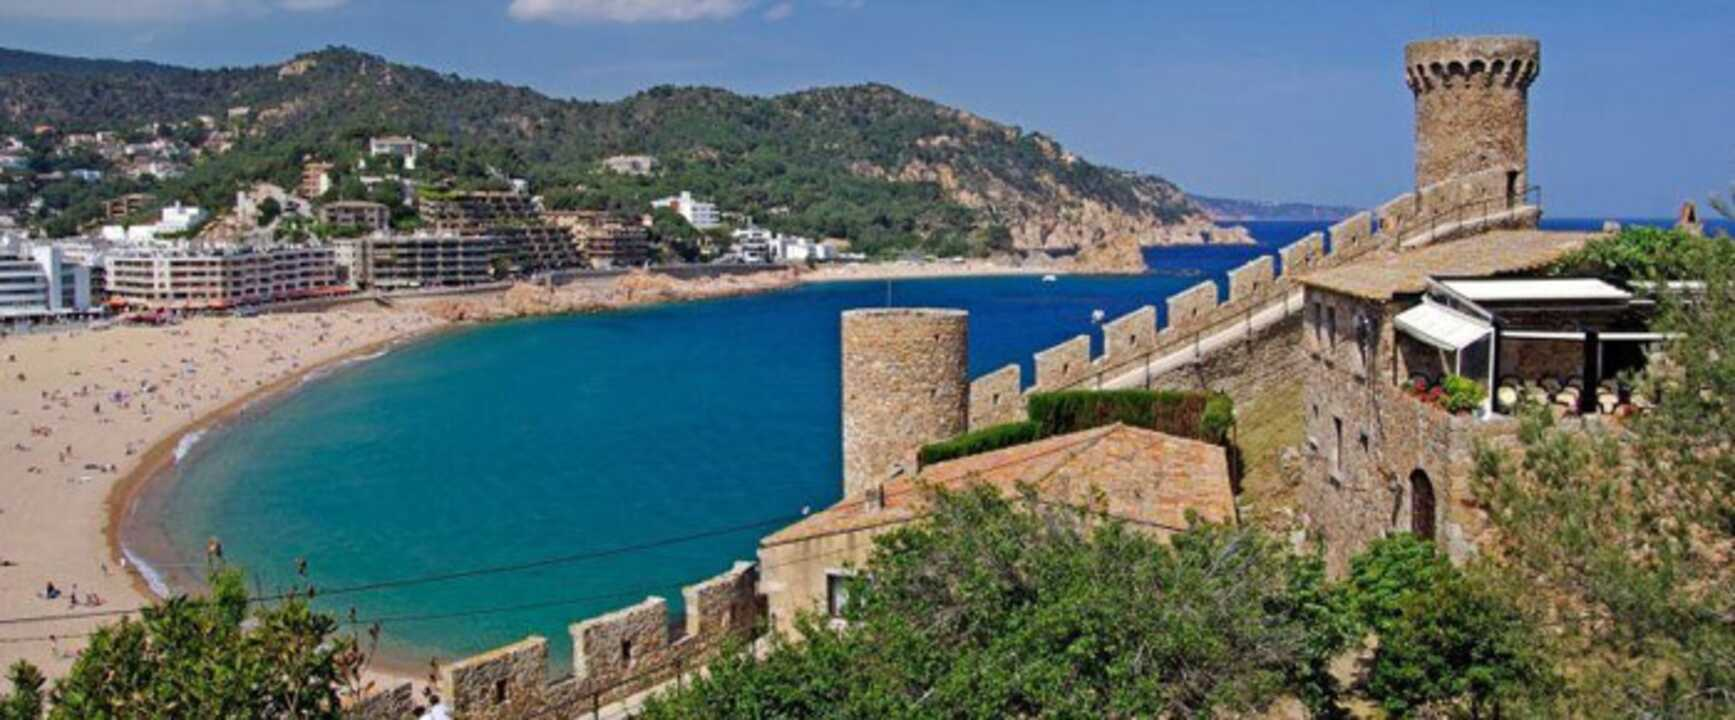 Cheap Holidays To Tossa De Mar On The Beach